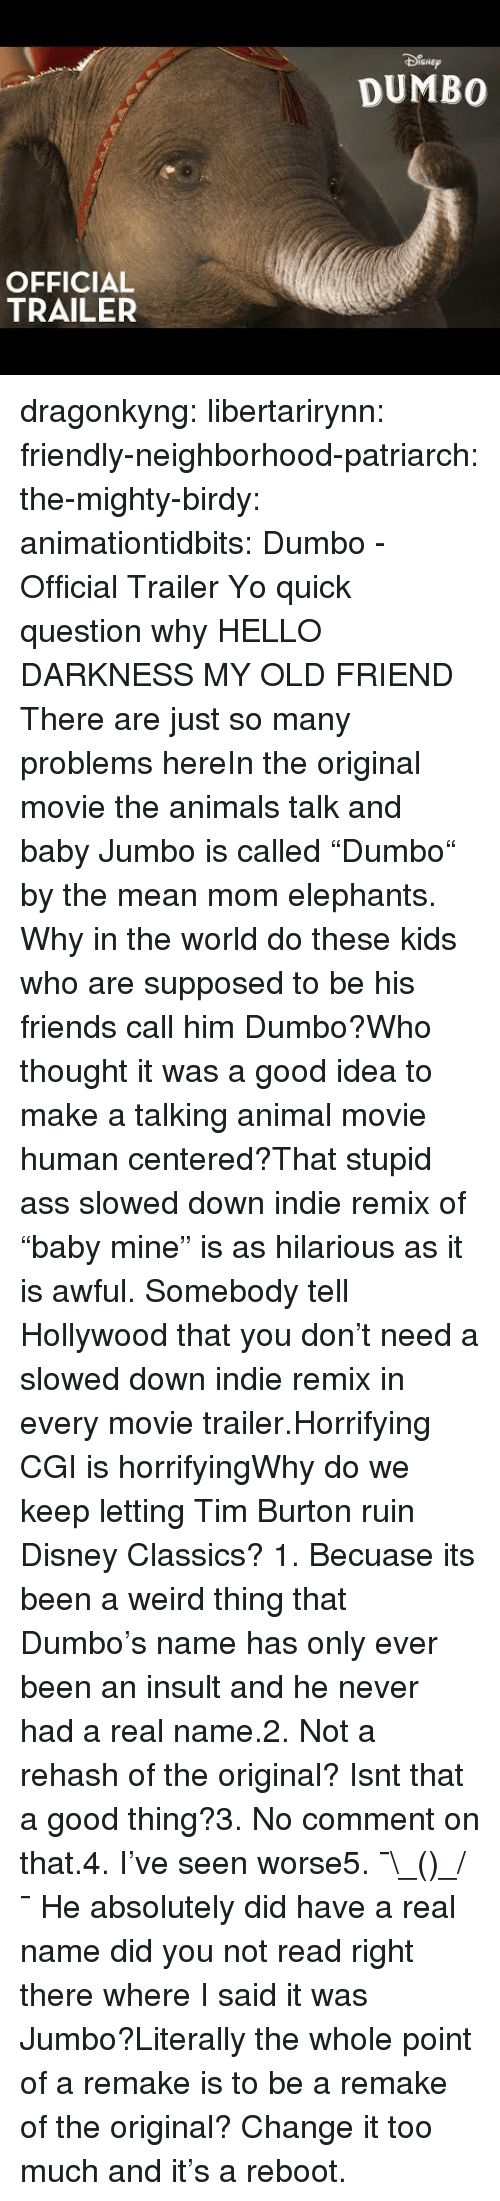 "no comment: SNEp  DUMBO  OFFICIAL  TRAILER dragonkyng:  libertarirynn:  friendly-neighborhood-patriarch: the-mighty-birdy:   animationtidbits:  Dumbo - Official Trailer  Yo quick question why   HELLO DARKNESS MY OLD FRIEND  There are just so many problems hereIn the original movie the animals talk and baby Jumbo is called ""Dumbo"" by the mean mom elephants. Why in the world do these kids who are supposed to be his friends call him Dumbo?Who thought it was a good idea to make a talking animal movie human centered?That stupid ass slowed down indie remix of ""baby mine"" is as hilarious as it is awful. Somebody tell Hollywood that you don't need a slowed down indie remix in every movie trailer.Horrifying CGI is horrifyingWhy do we keep letting Tim Burton ruin Disney Classics?  1. Becuase its been a weird thing that Dumbo's name has only ever been an insult and he never had a real name.2. Not a rehash of the original? Isnt that a good thing?3. No comment on that.4. I've seen worse5. ¯\_(ツ)_/¯  He absolutely did have a real name did you not read right there where I said it was Jumbo?Literally the whole point of a remake is to be a remake of the original? Change it too much and it's a reboot."